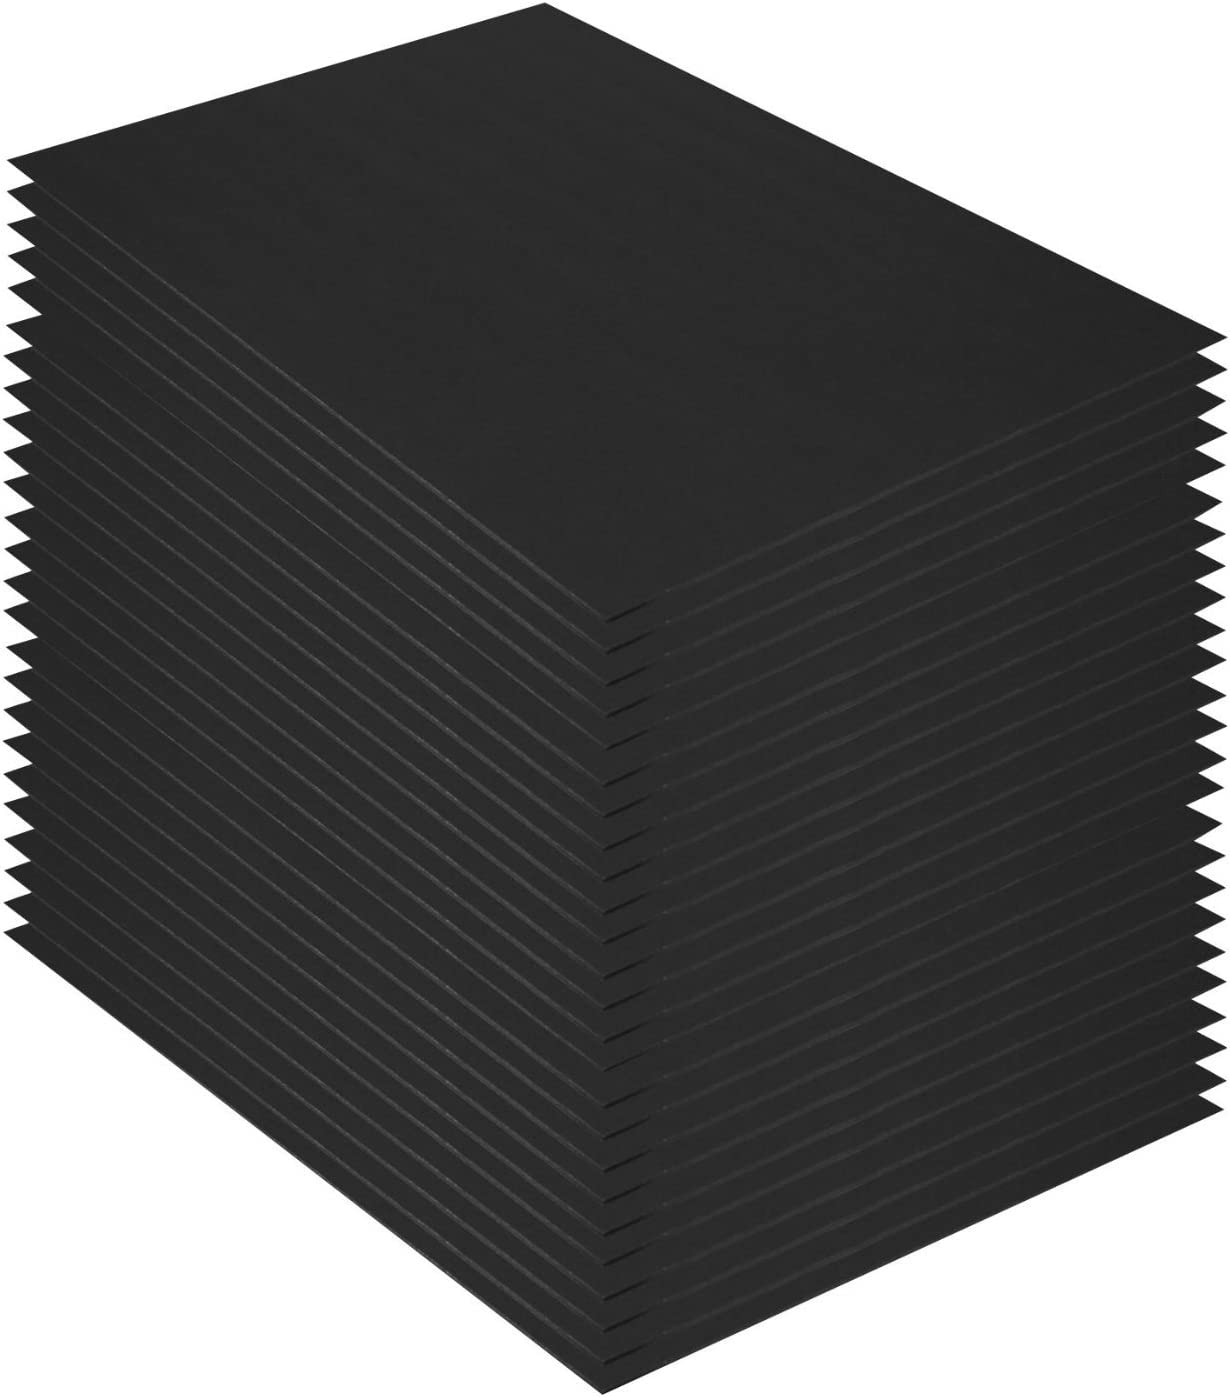 3//16 Thick 11x14 Black Foam Core Backing Boards 11x14, Black Golden State Art Pack of 50